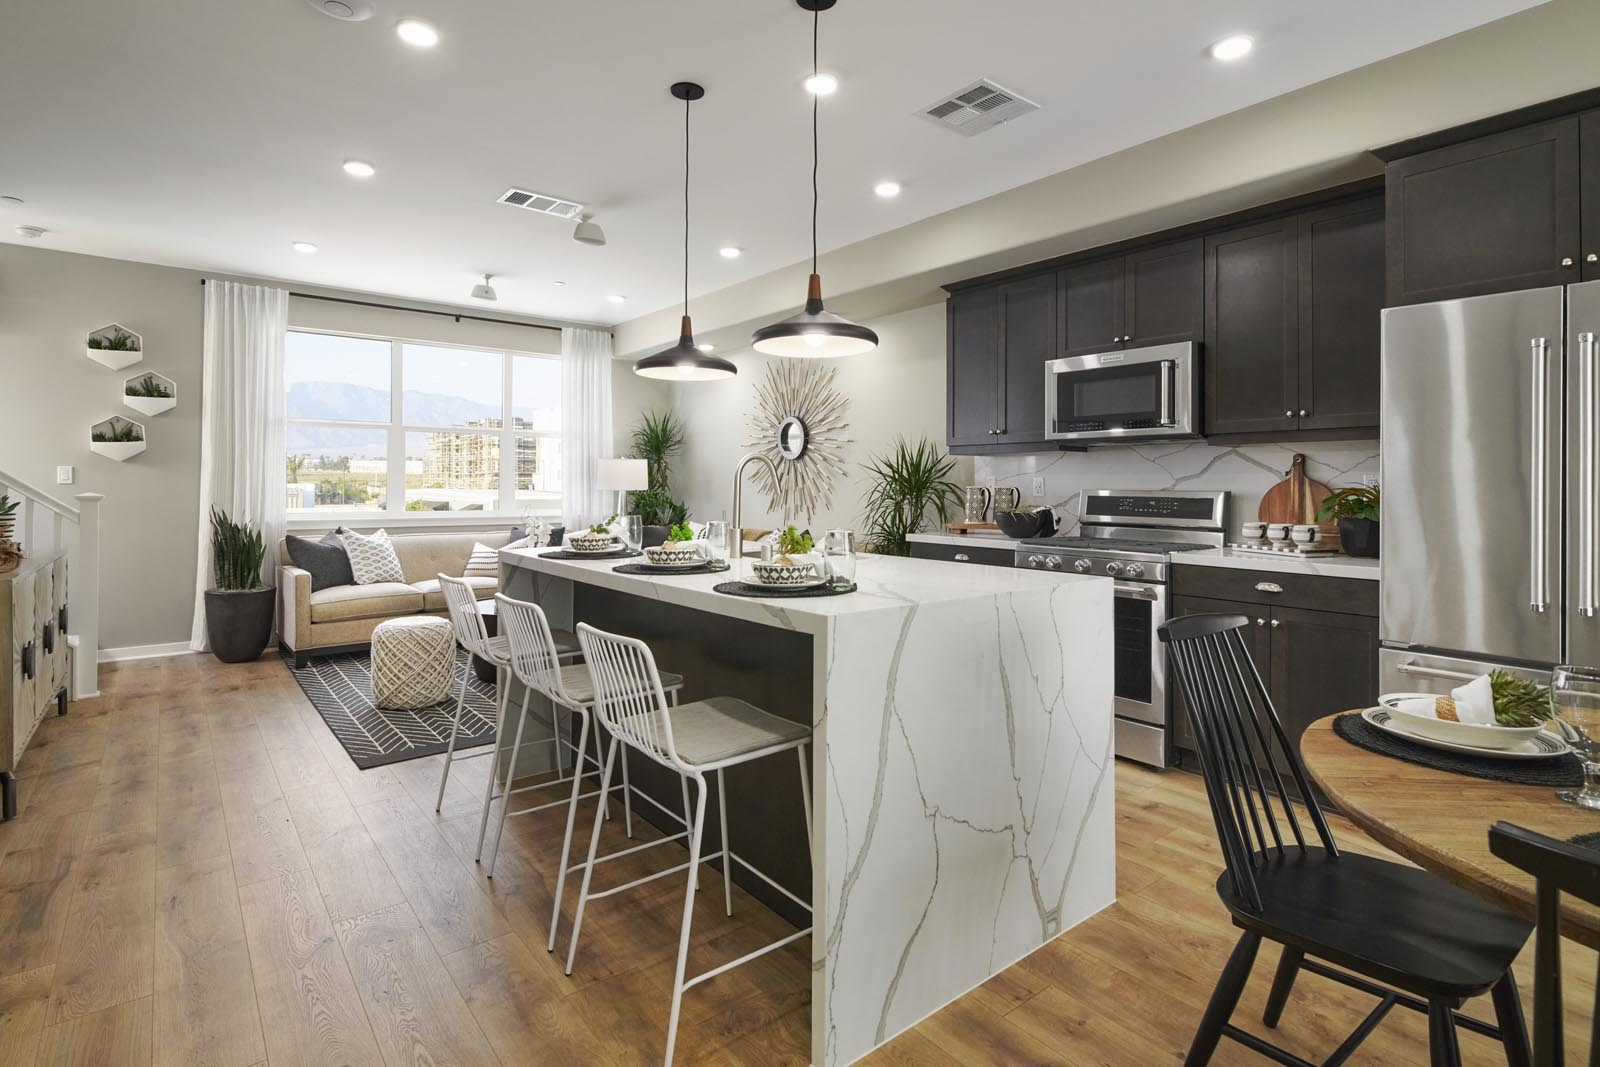 Kitchen | Residence 2 | Enliven | New Homes in Rancho Cucamonga, CA | Van Daele Homes